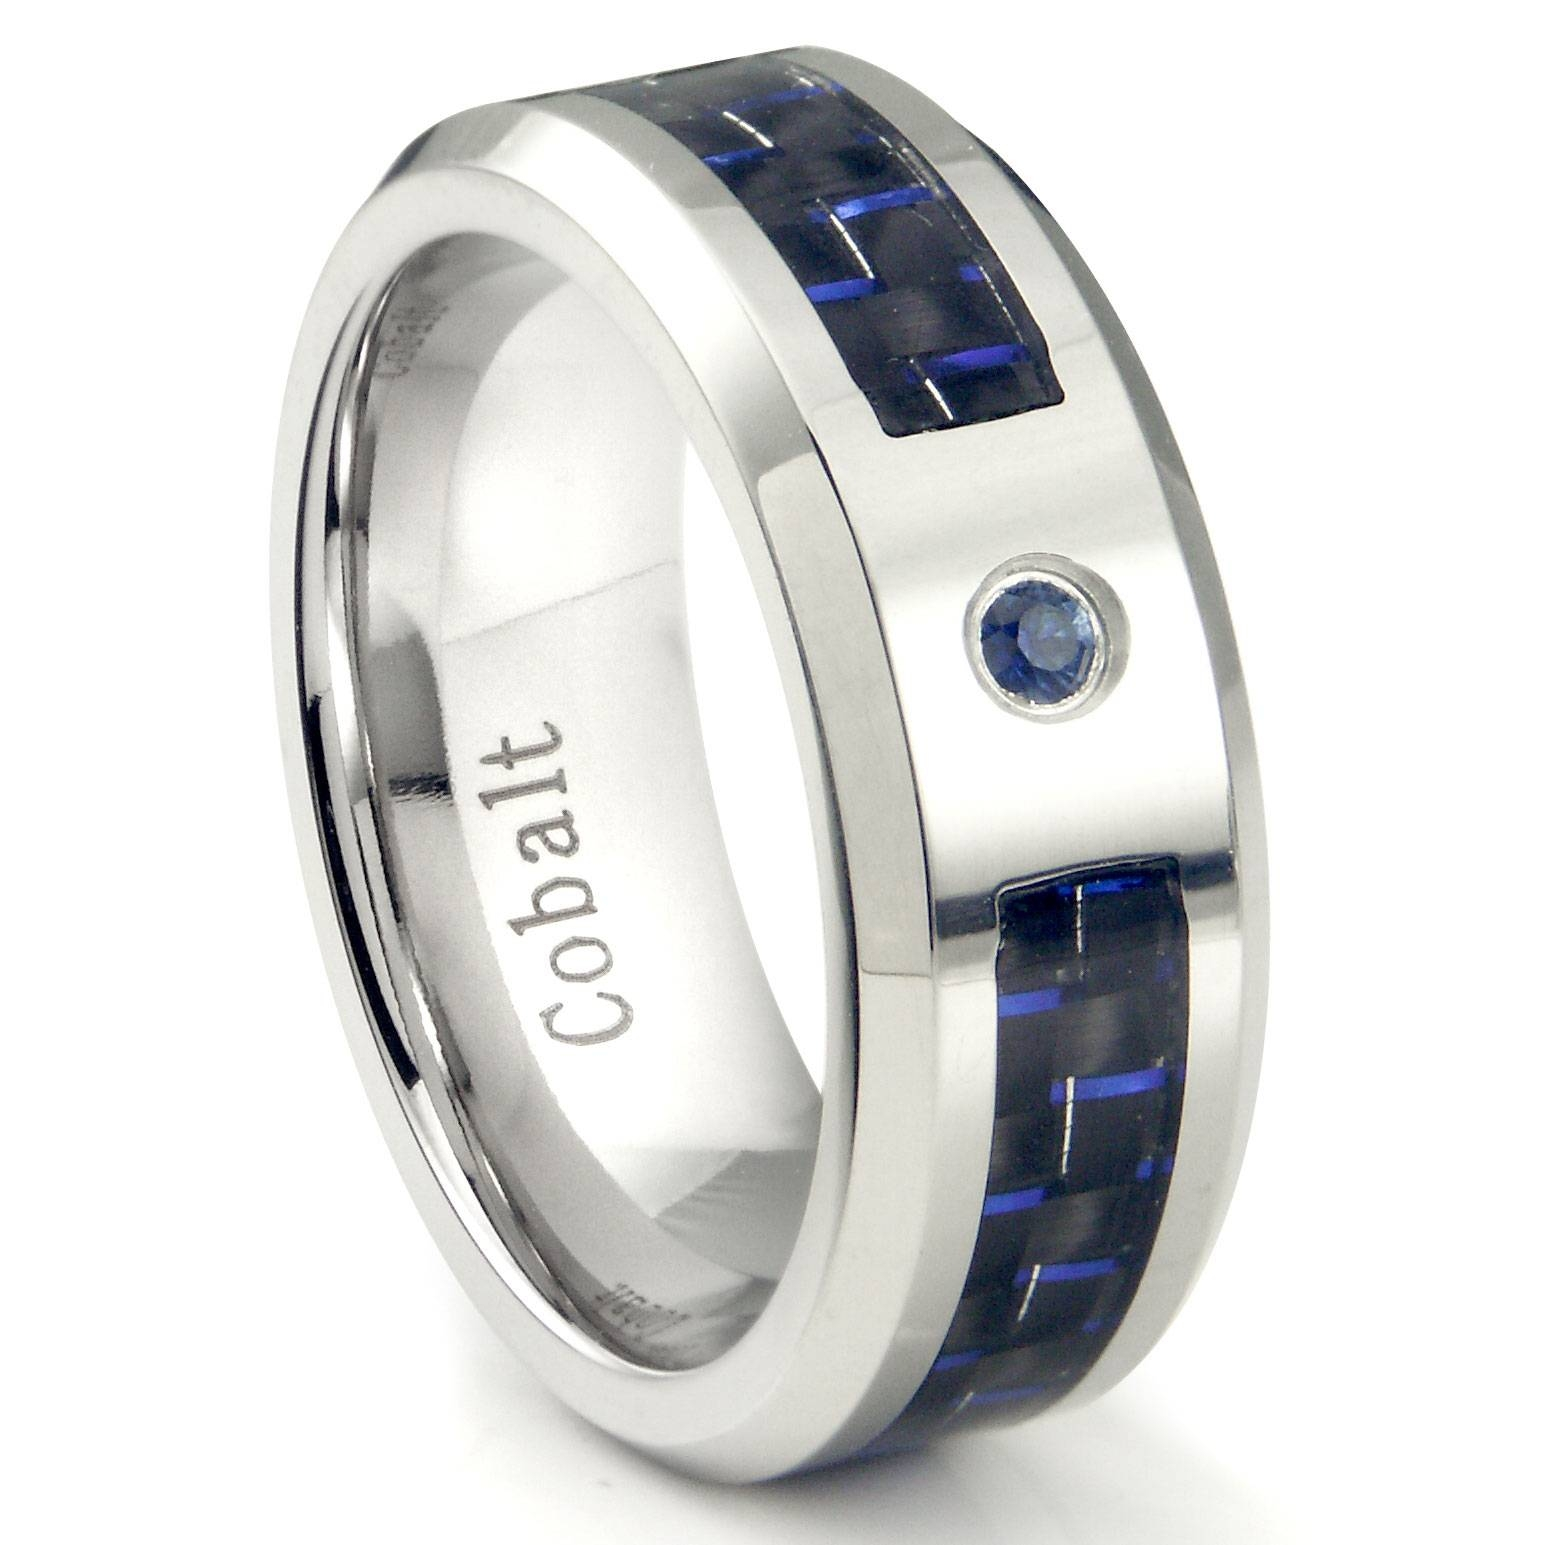 Cobalt Chrome 8Mm Blue Sapphire & Blue Carbon Fiber Inlay Wedding Intended For Blue Sapphire Men's Wedding Bands (View 5 of 15)